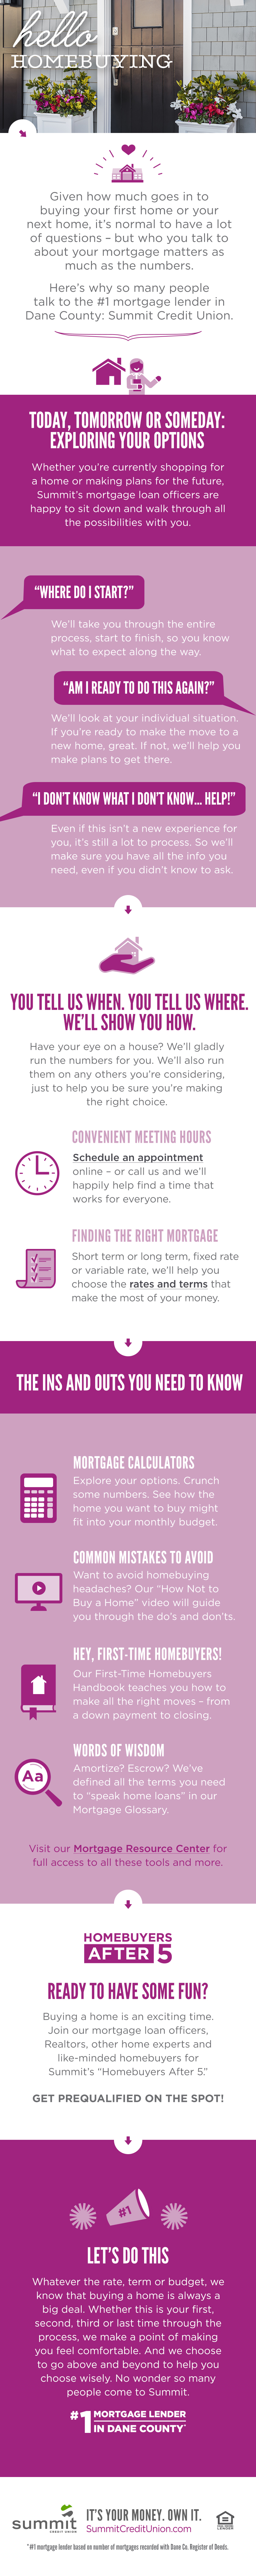 Hello Homebuying Infographic | Number One Mortgage Lender in Dane County